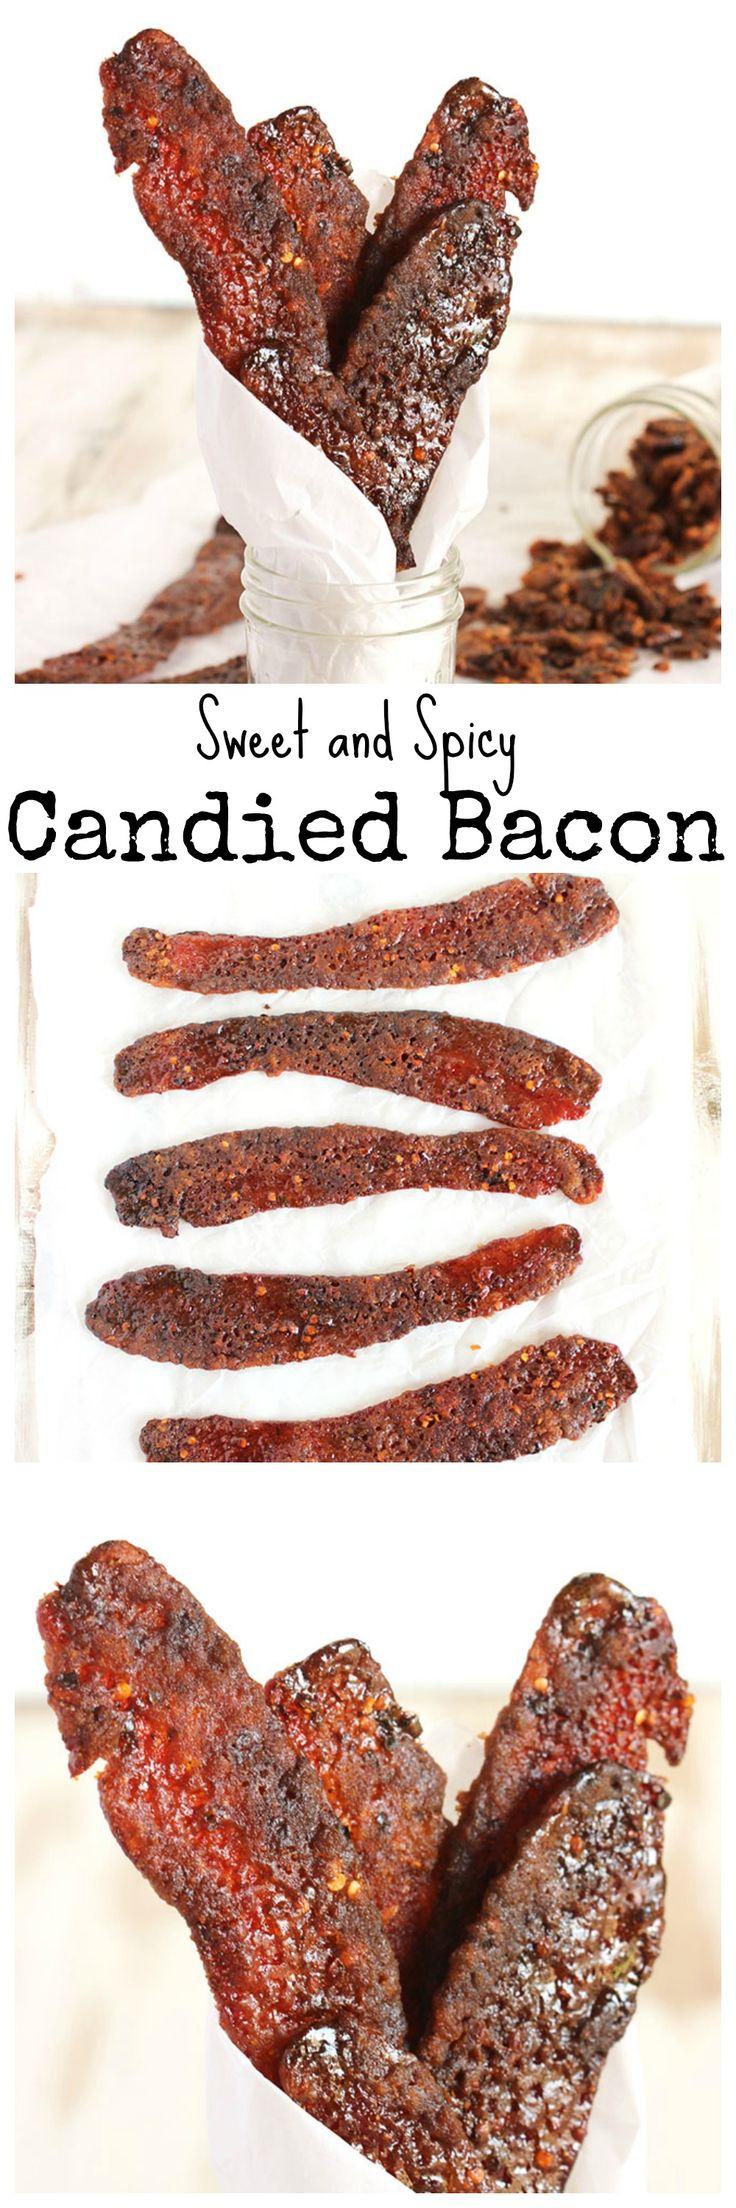 Sweet and Spicy Candied Bacon is a completely addicting snack. The perfect gift for any bacon lover. | @suburbansoapbox #smithfieldflavor